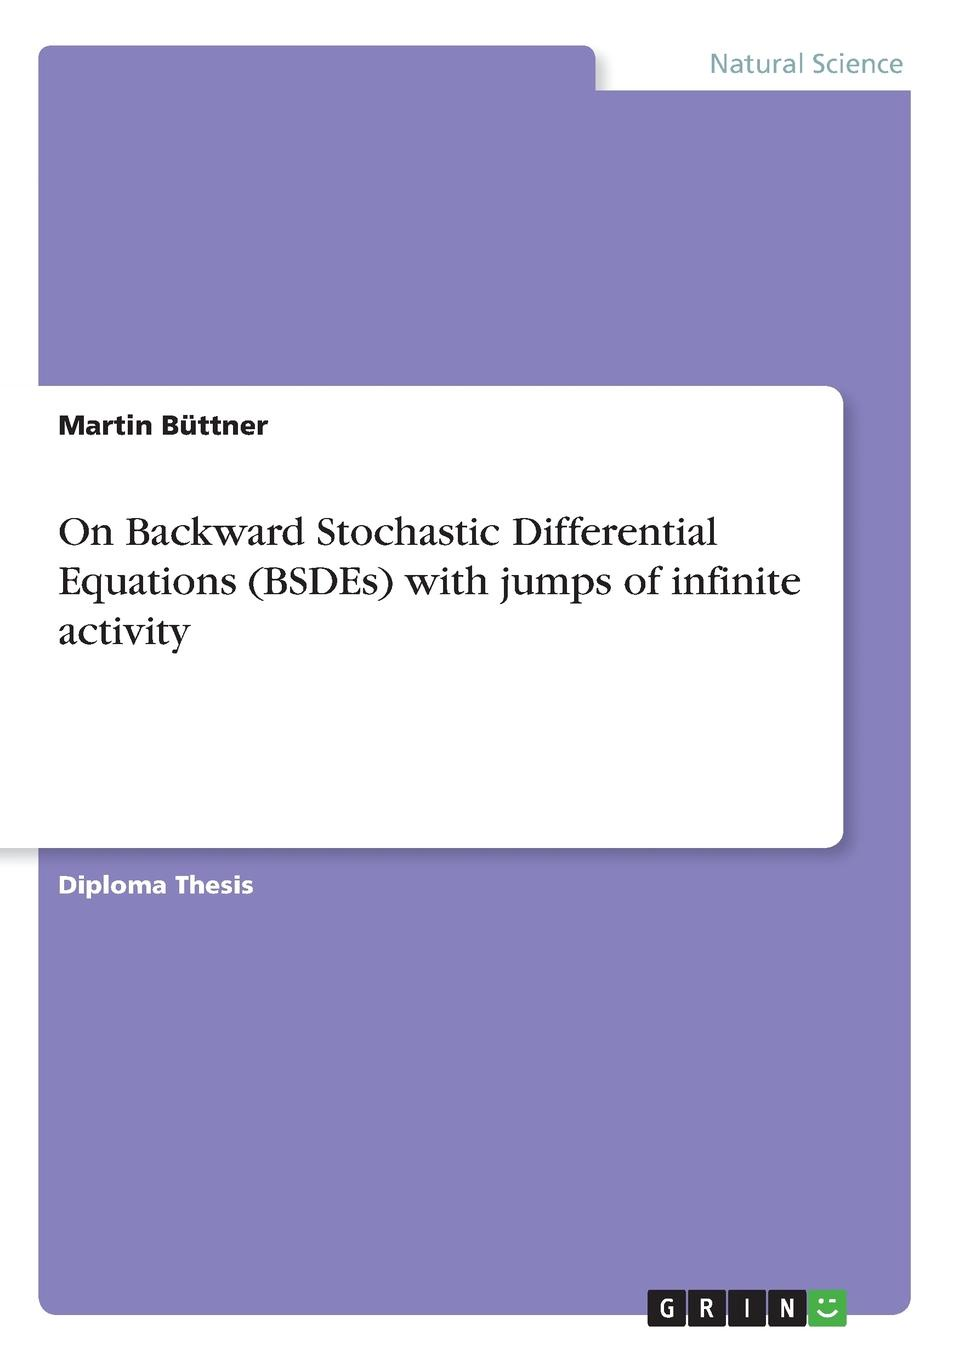 Martin Büttner On Backward Stochastic Differential Equations (BSDEs) with jumps of infinite activity cho w s to stochastic structural dynamics application of finite element methods